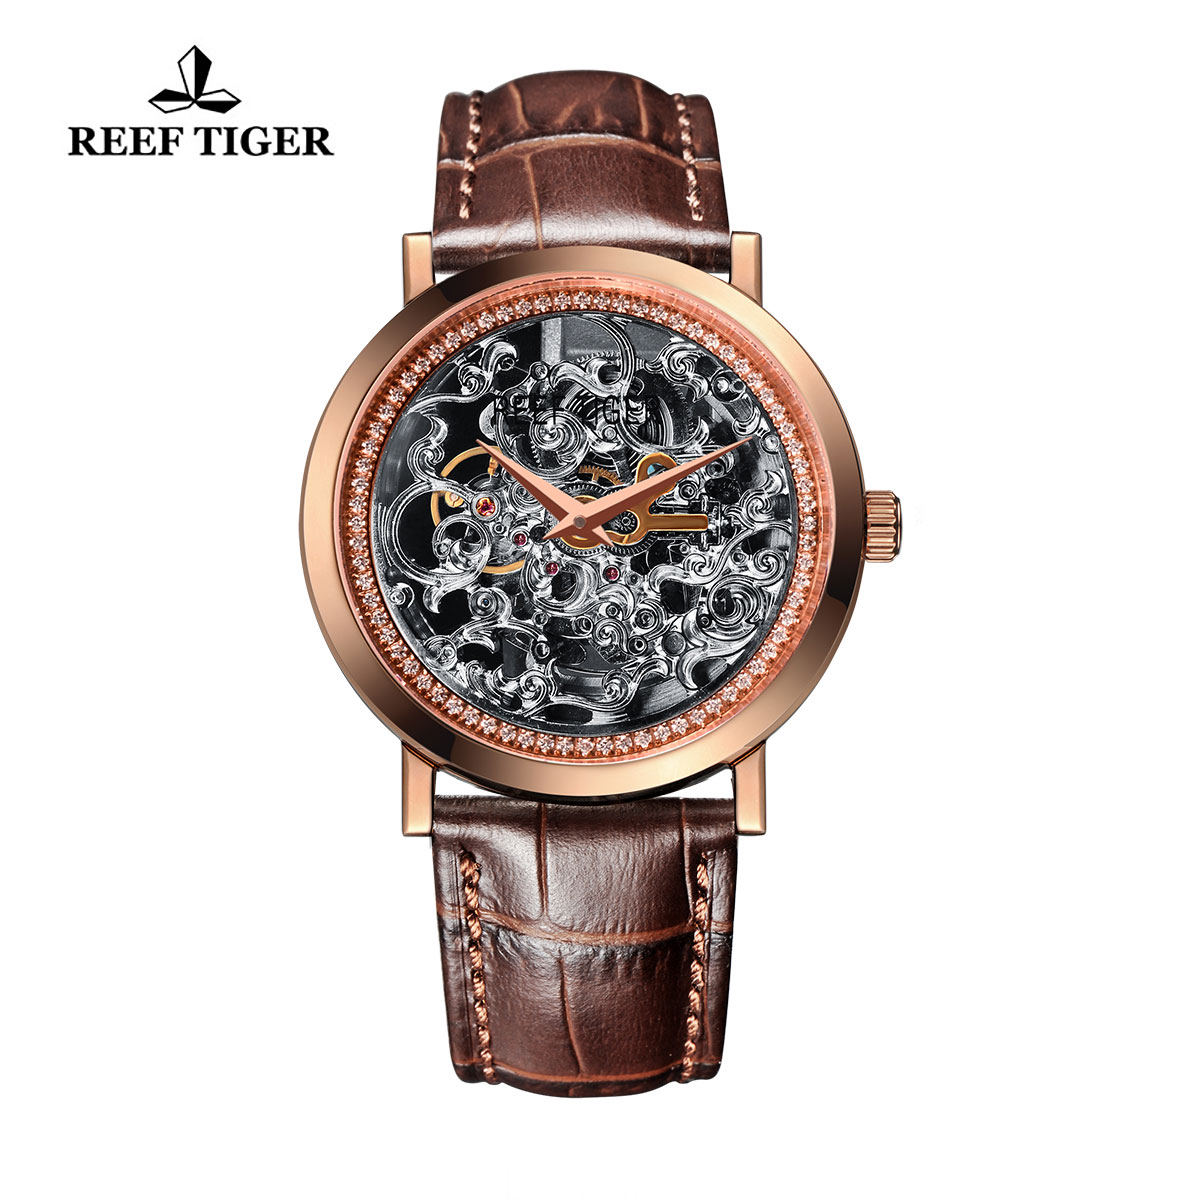 Reef Tiger Casual Watch Rose Gold Skeleton Dial Automatic Watch RGA168-PSS